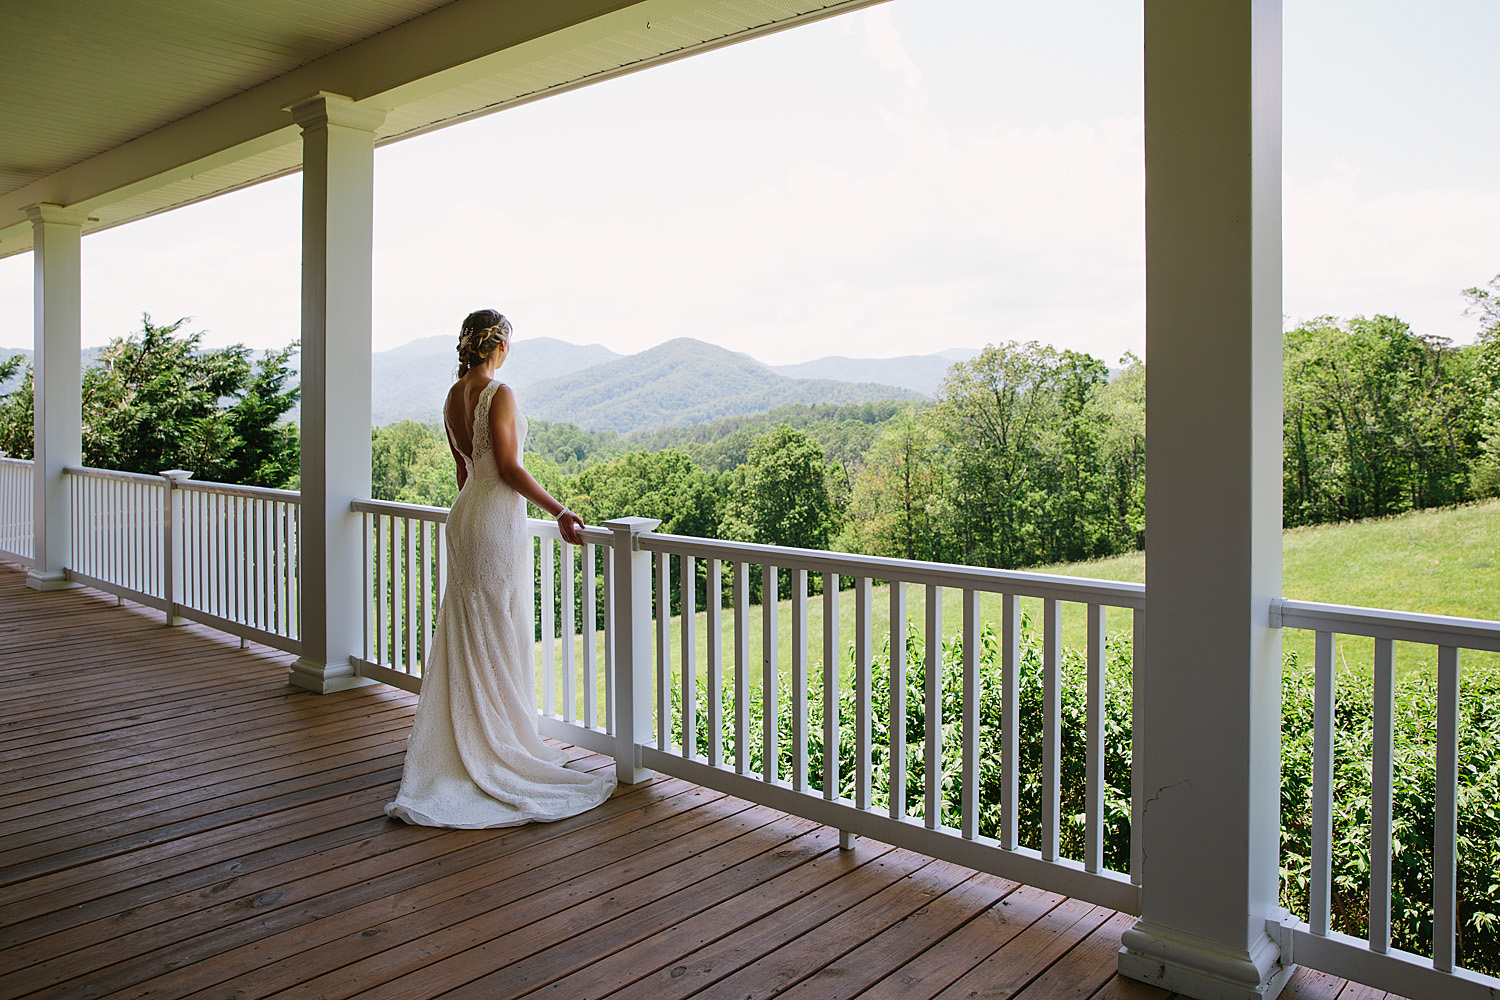 Jeremy-Russell-Asheville-The-Ridge-Wedding-1705-37.jpg